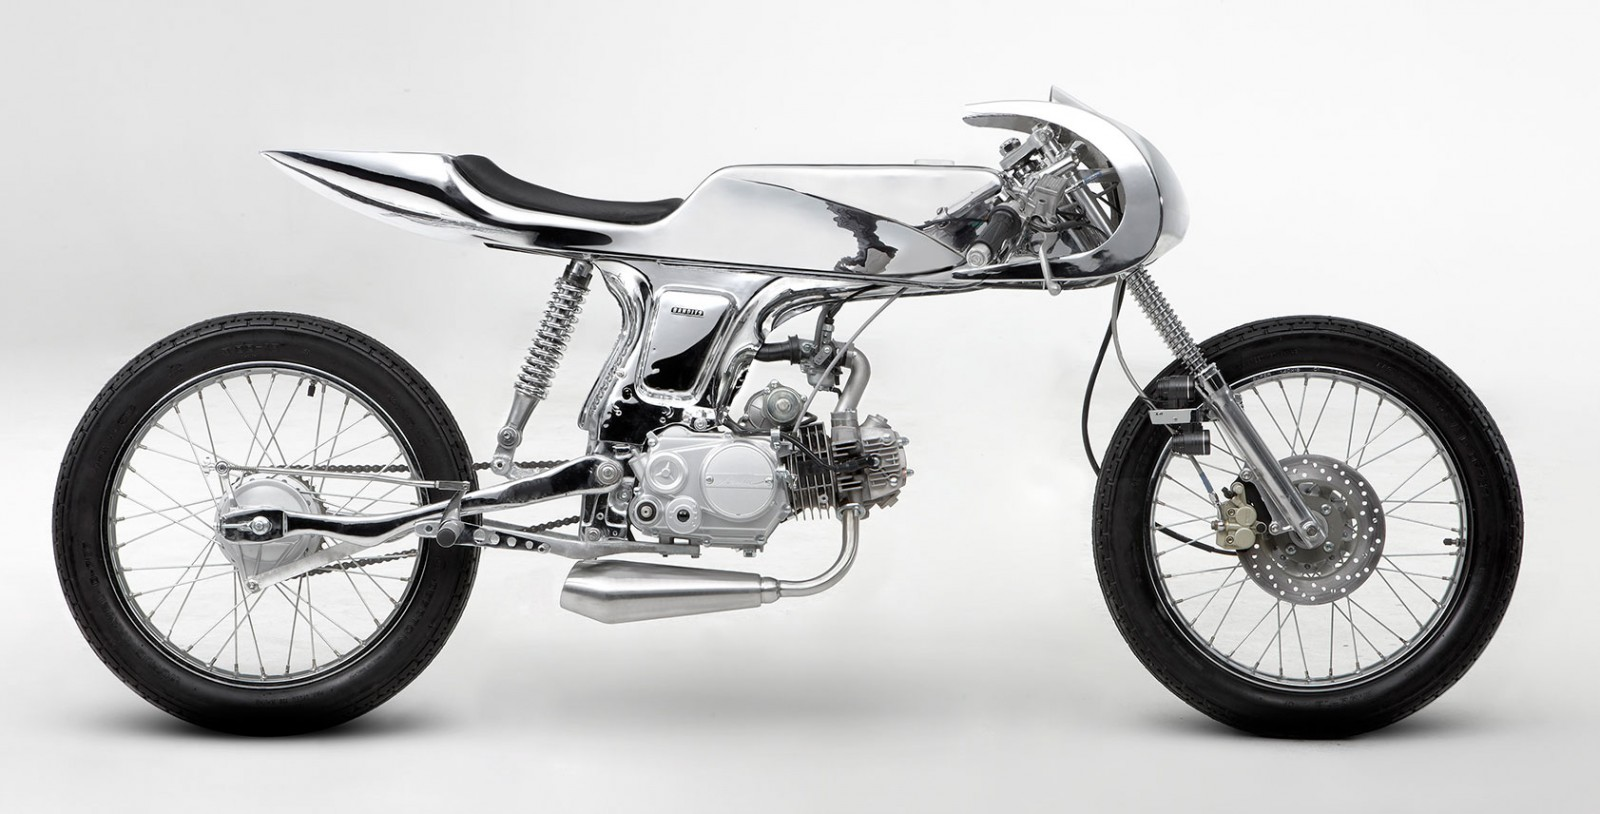 Chinese-made Ava motorcycle by Bandit9 does not look like innovation is dead in China